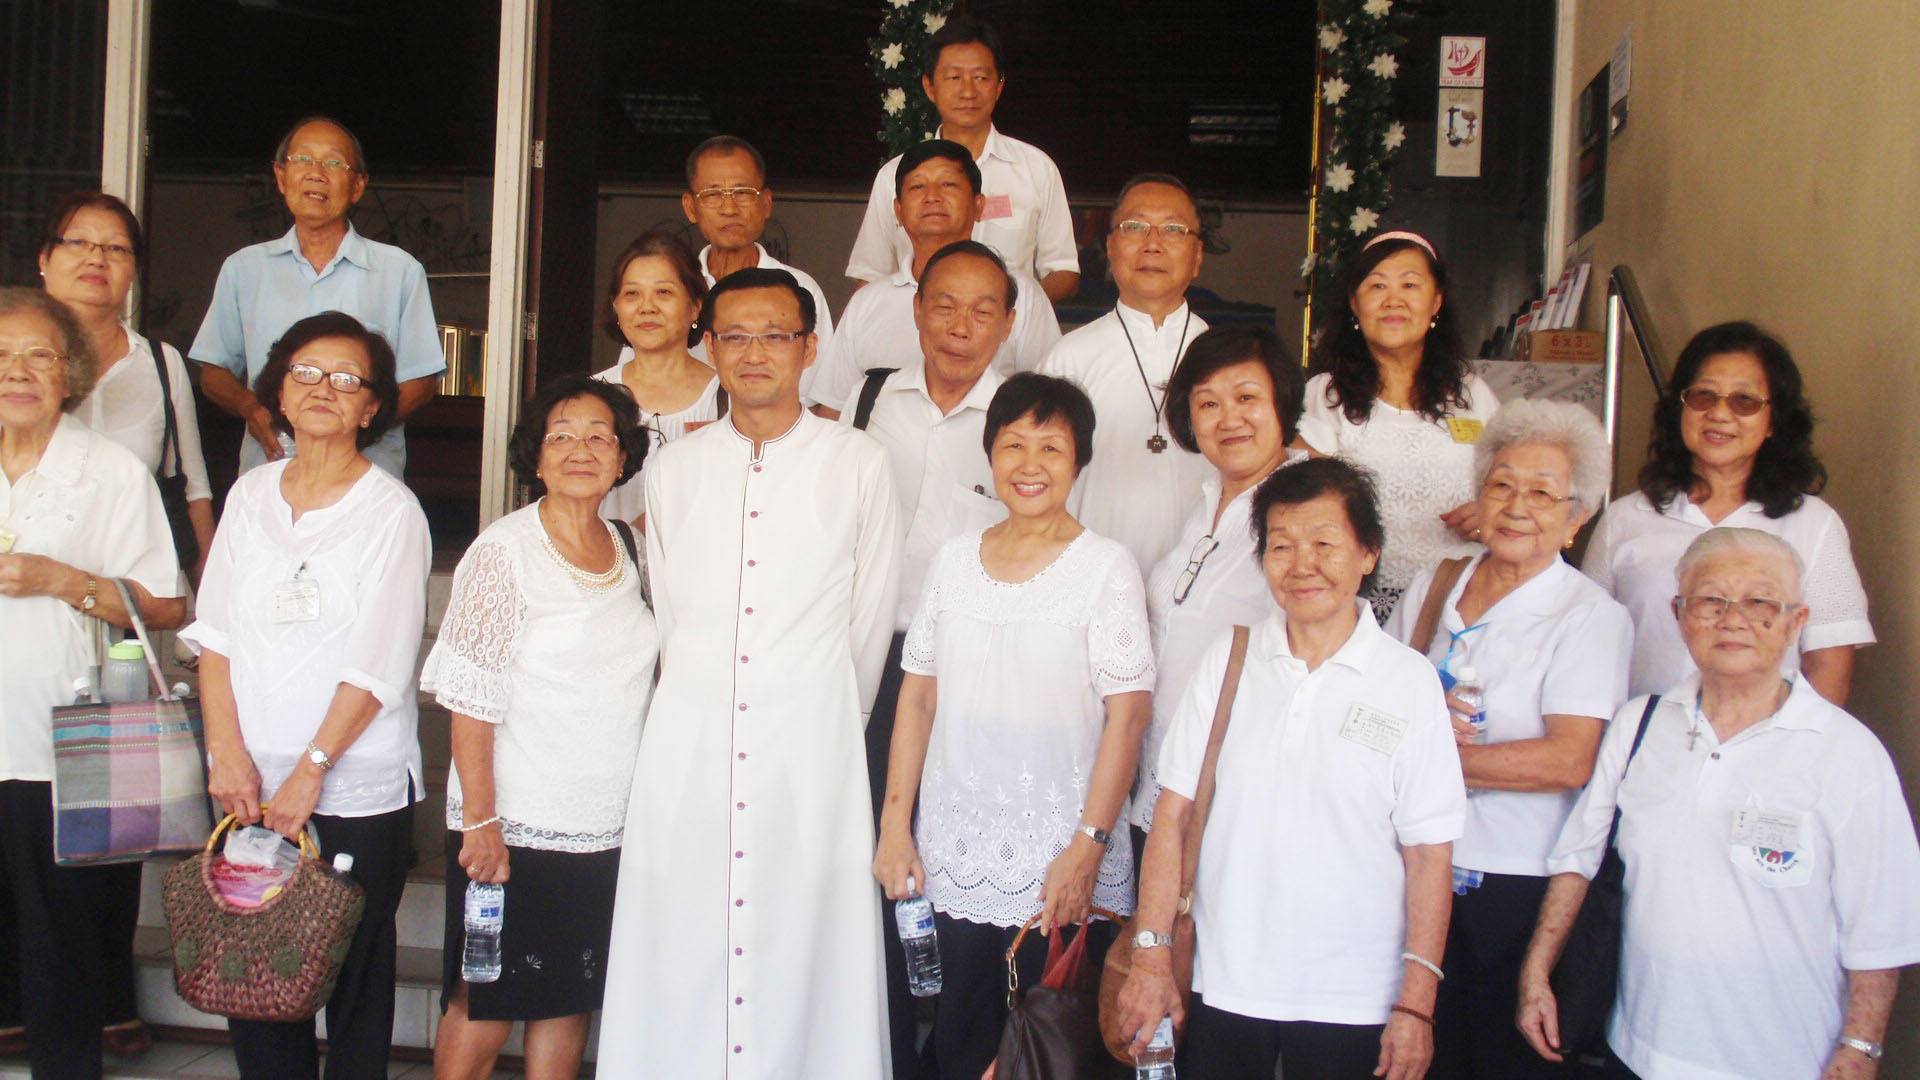 Some members take the opportunity with pose with Abp Wong after the Acies.